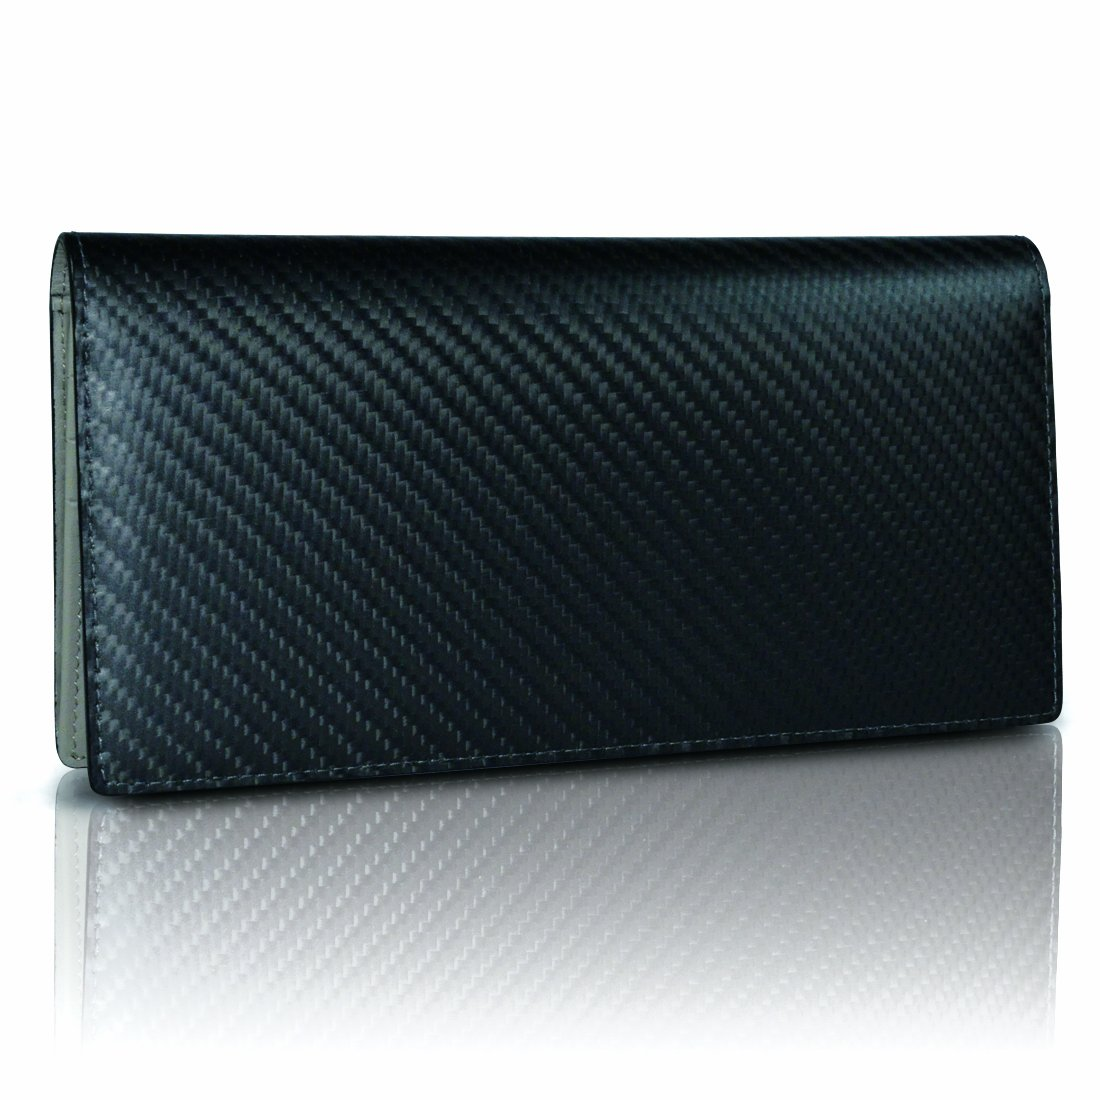 monCarbone Carbon SOFT Coat Wallet